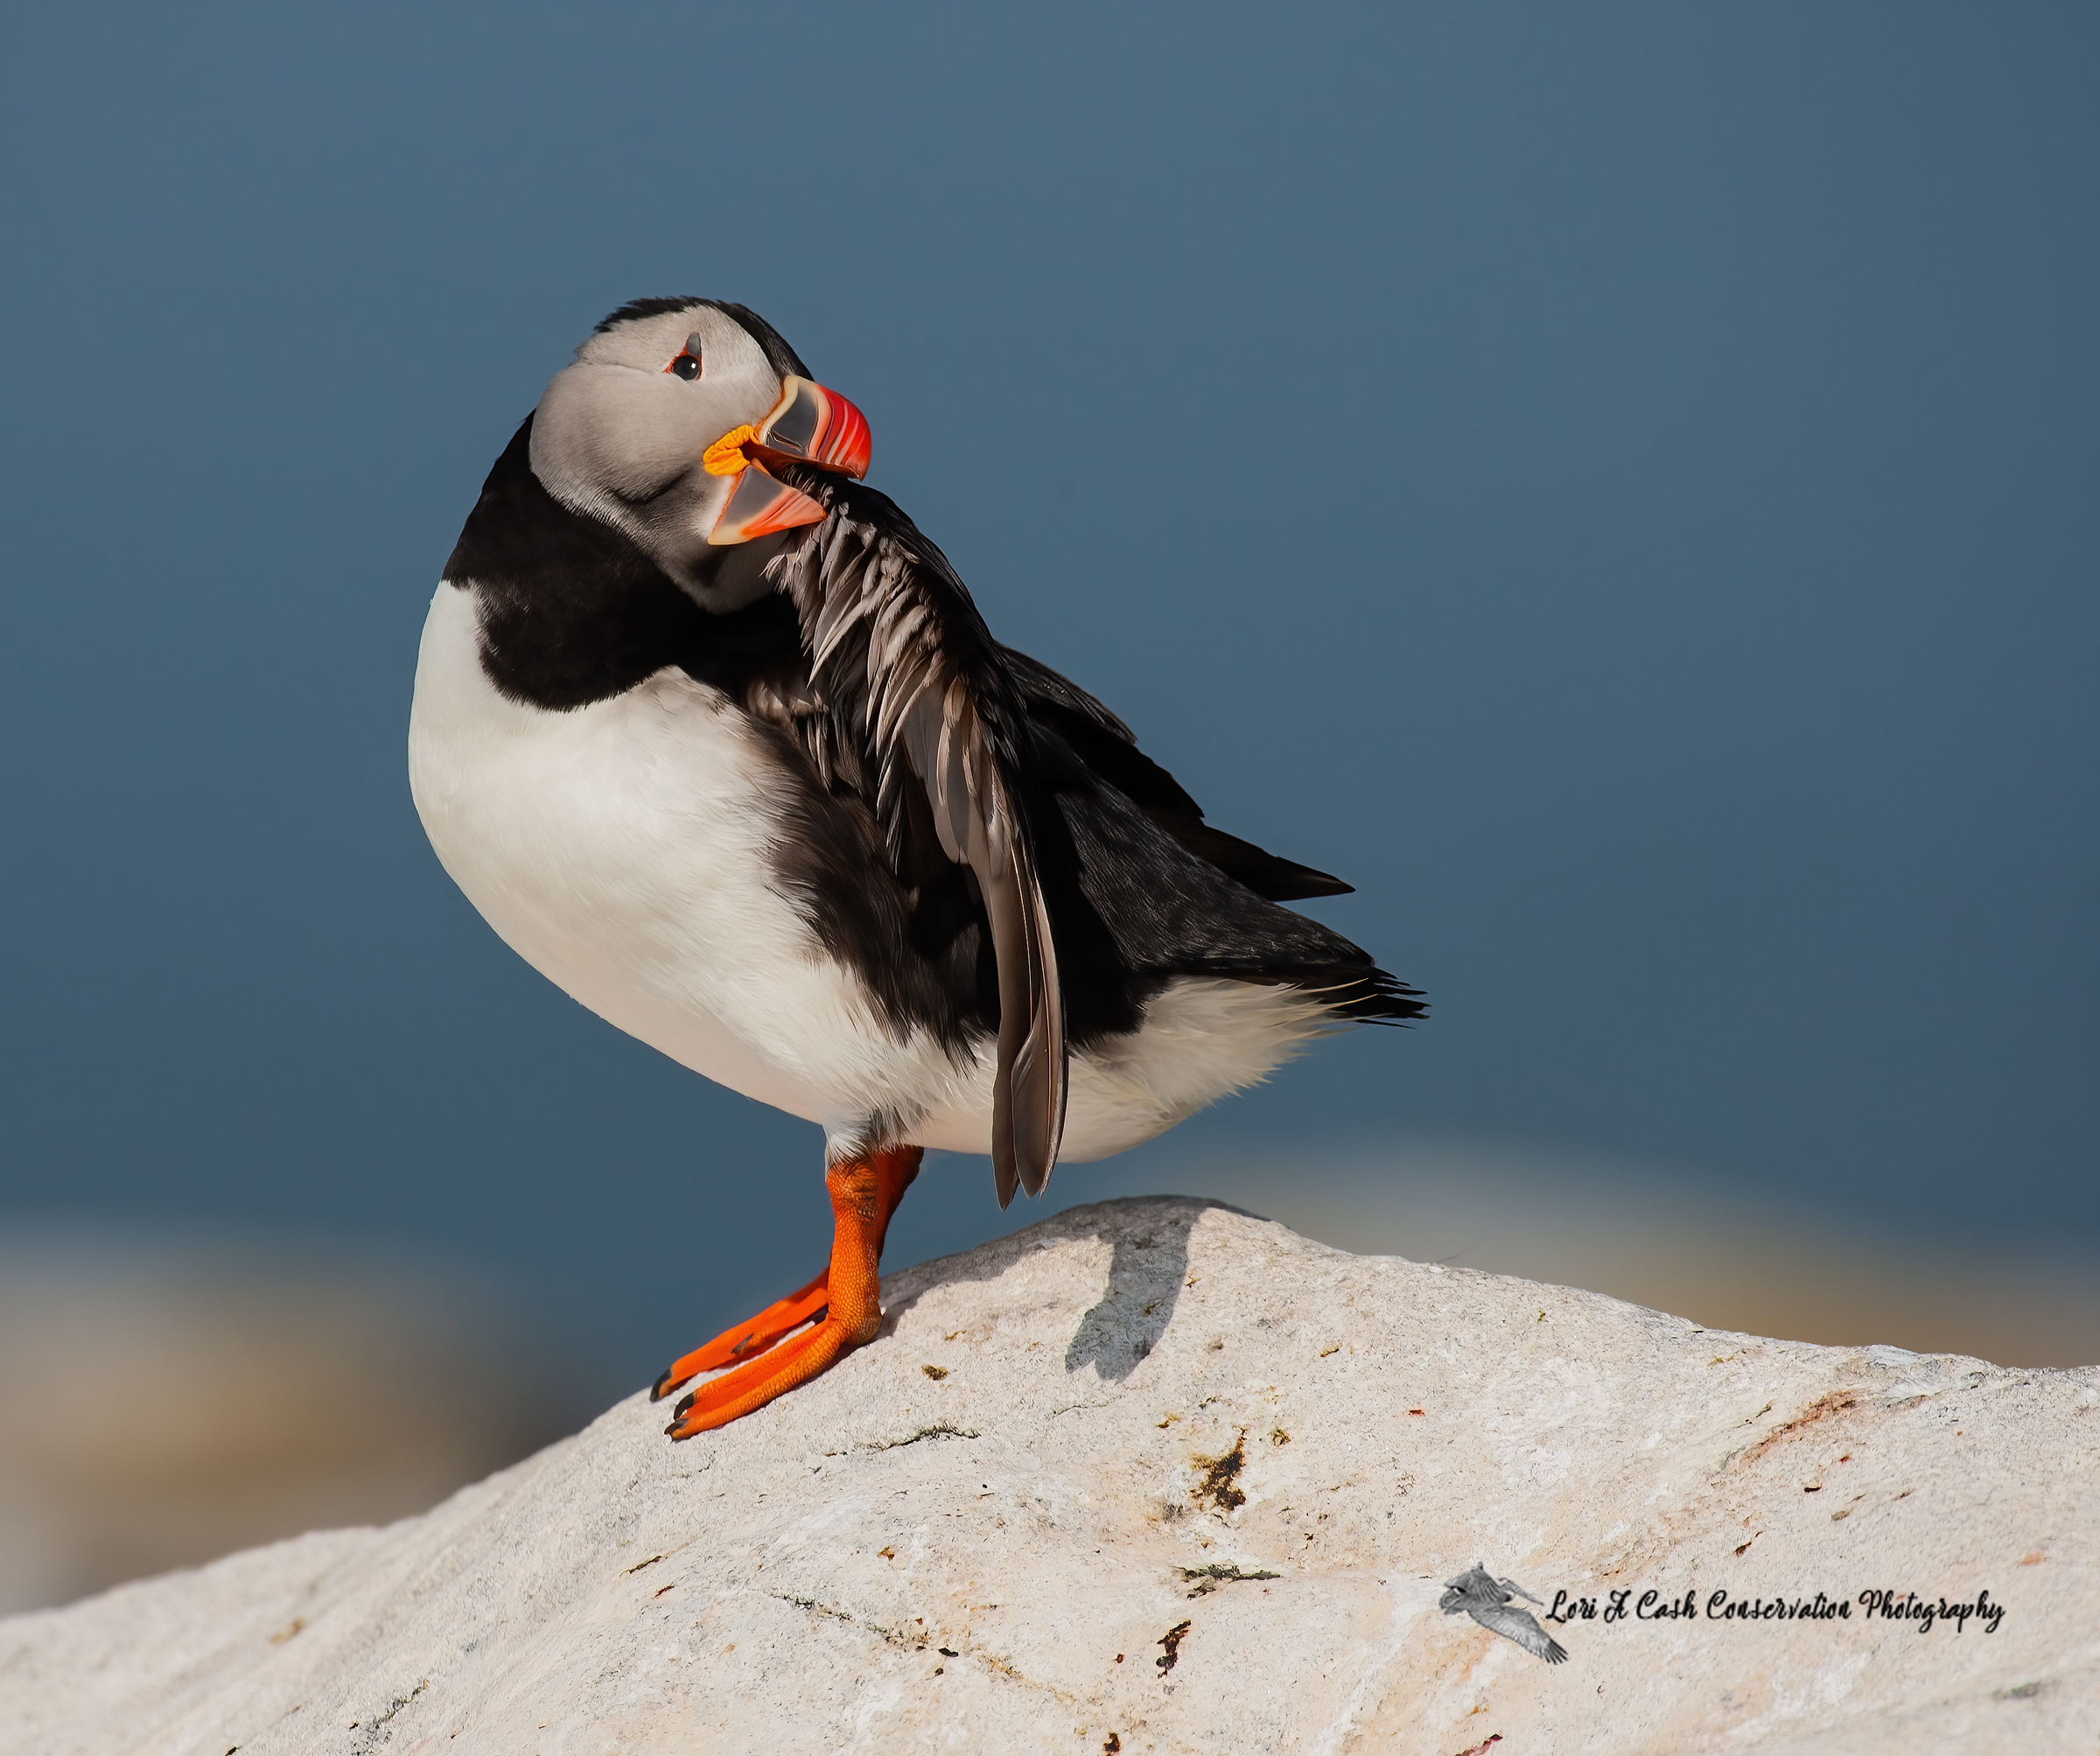 Atlantic puffin preening while standing on a rock at Machias Seal Island in Maine.